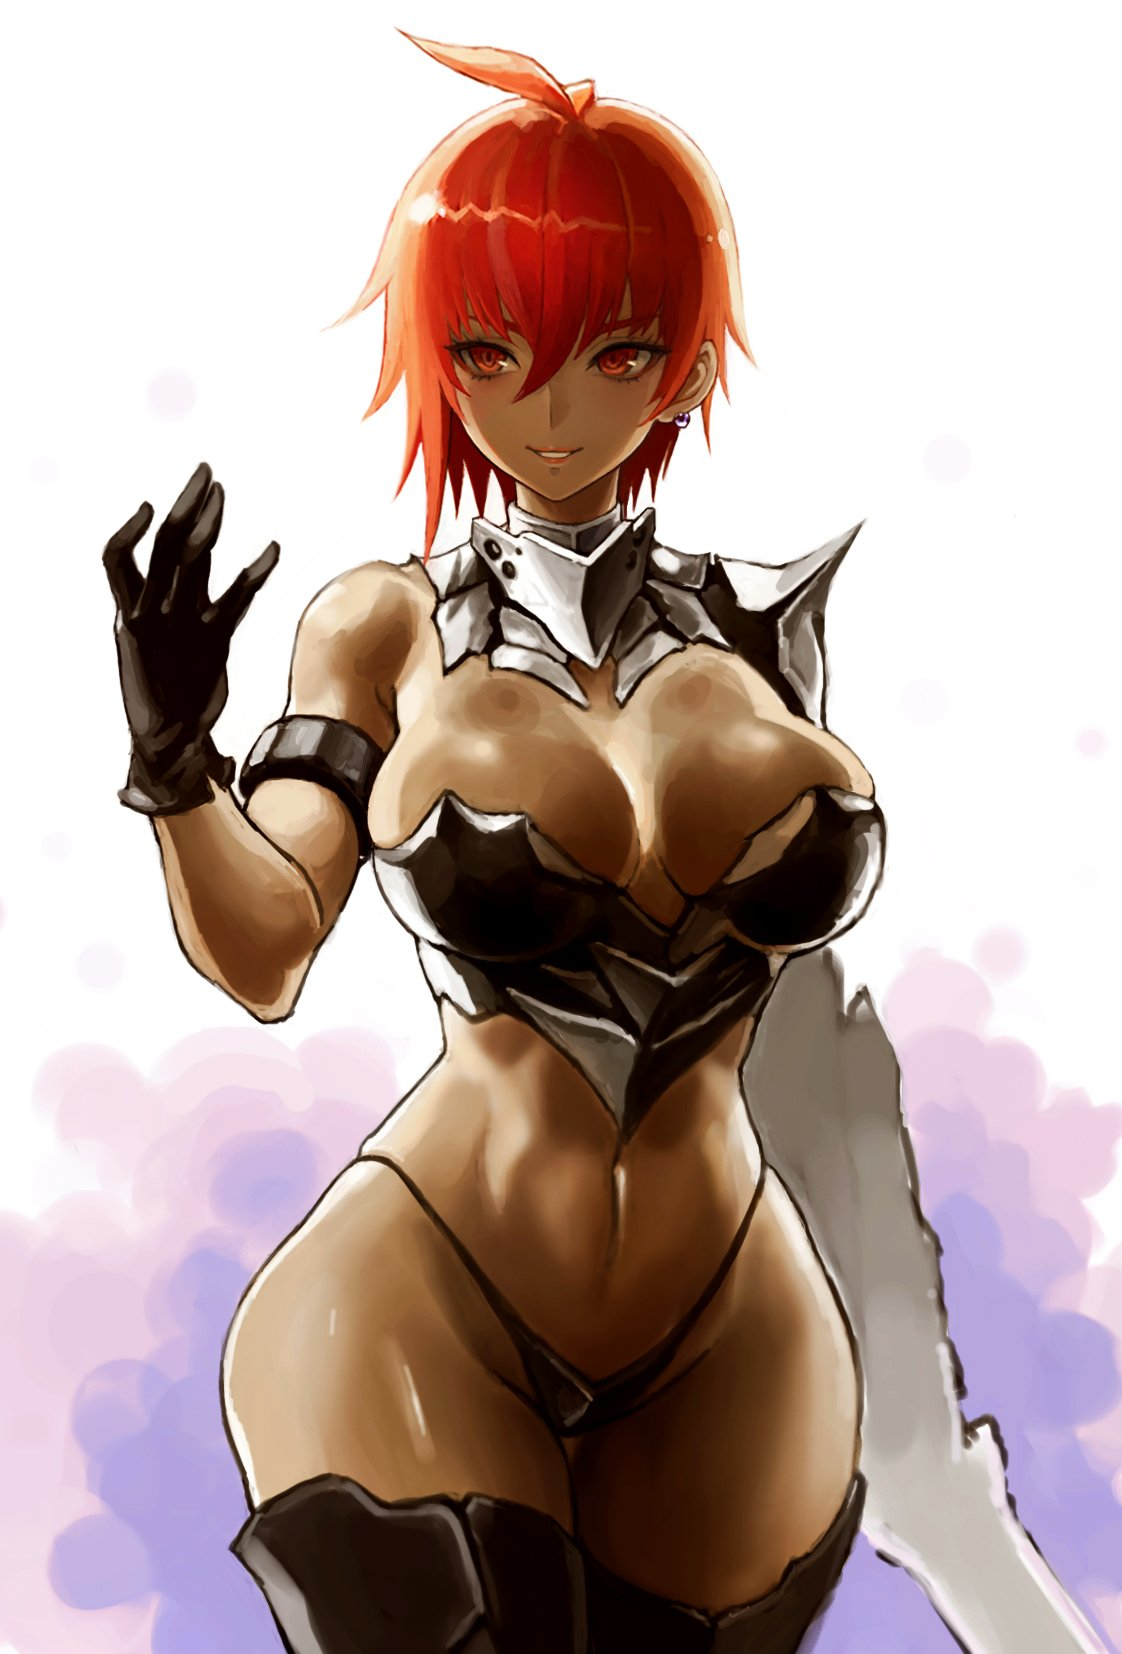 1girl armlet armor bangs bikini_armor black_gloves boots breasts cowboy_shot earrings gauntlets gloves highleg highres hiro1984 jewelry large_breasts looking_at_viewer navel original redhead short_hair smile solo standing tan thigh-highs thigh_boots wide_hips